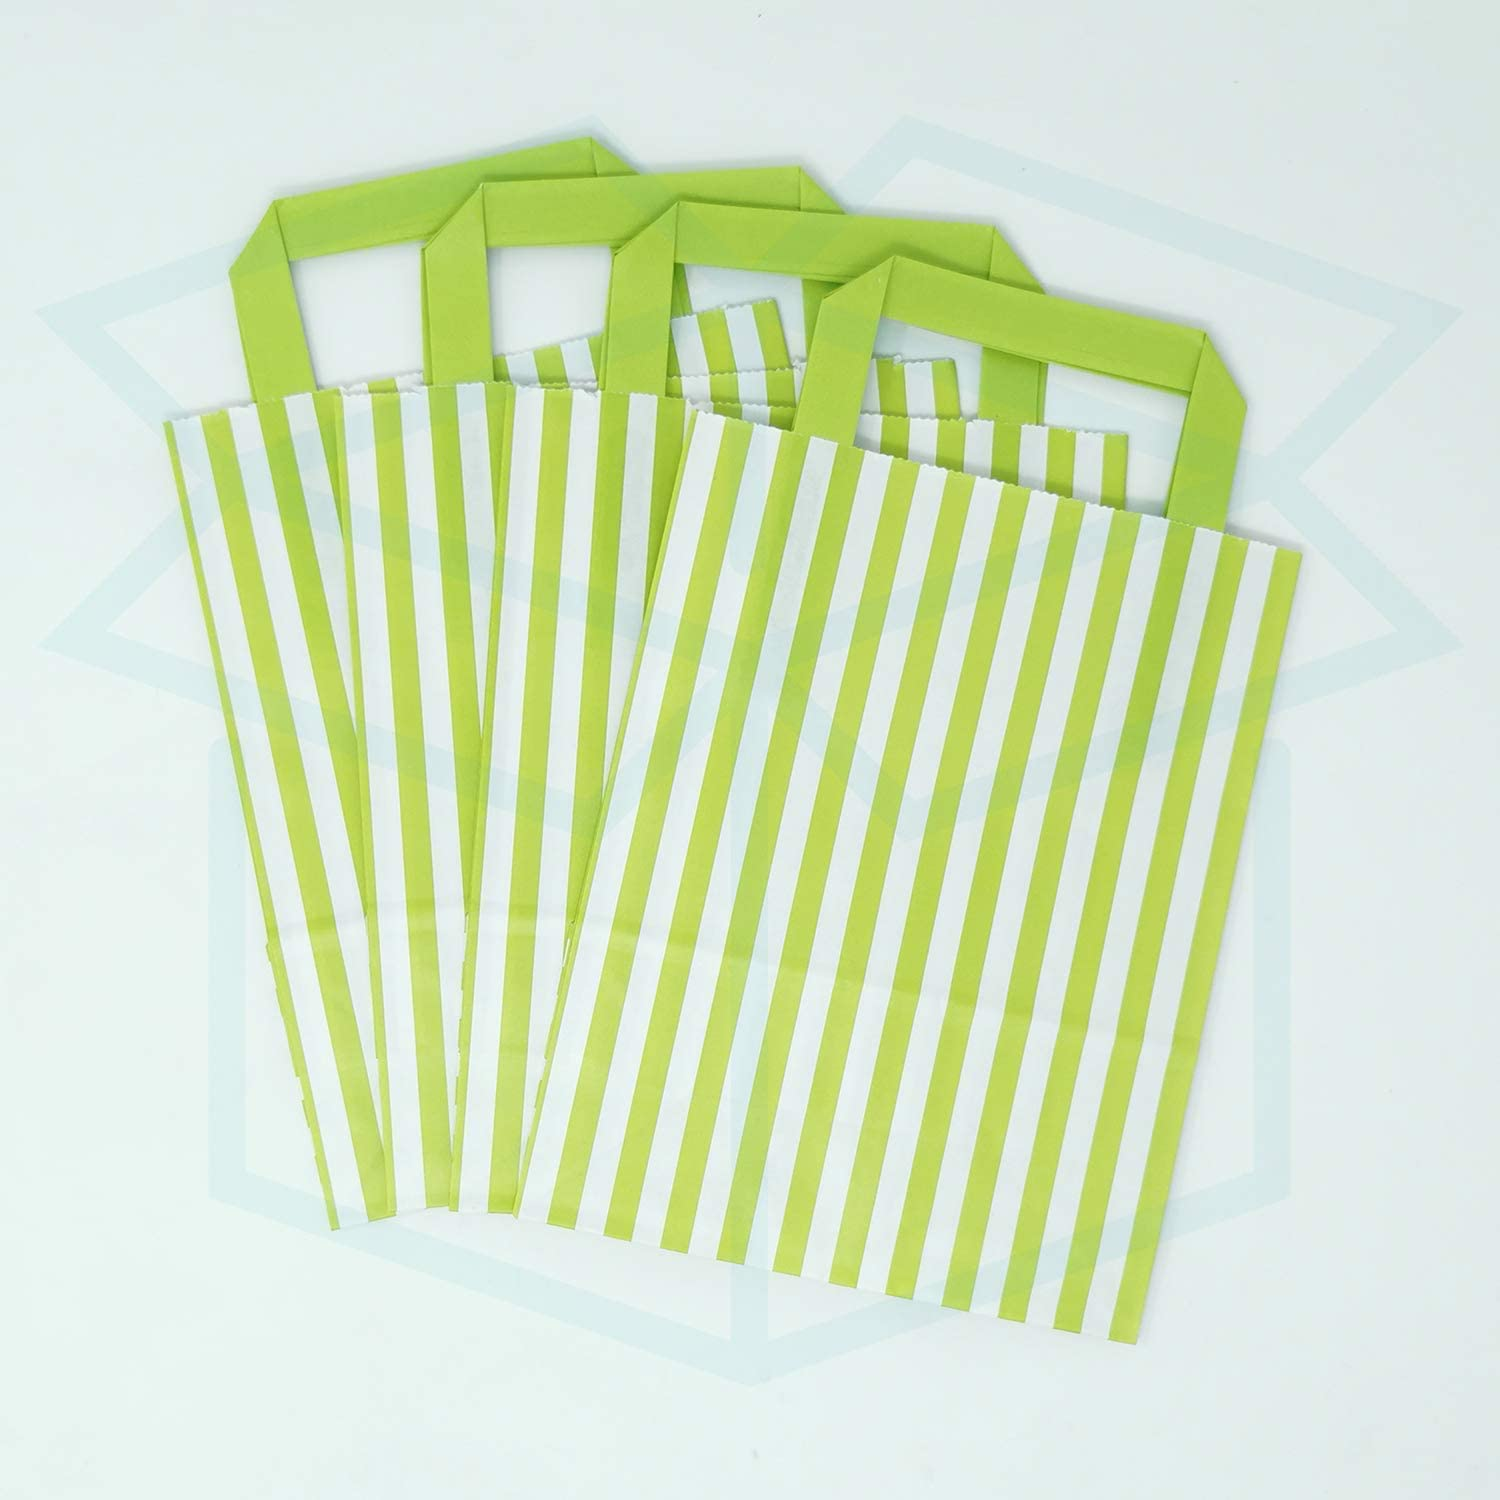 For Takeaway We Can Source It Ltd SOS Block Bottom Kraft Paper Bags with Tape Handles 30 Pack 18 x 8 x 22cm Mixture Candy Stripe Paper Carrier Bags Biodegradable and Eco-Friendly